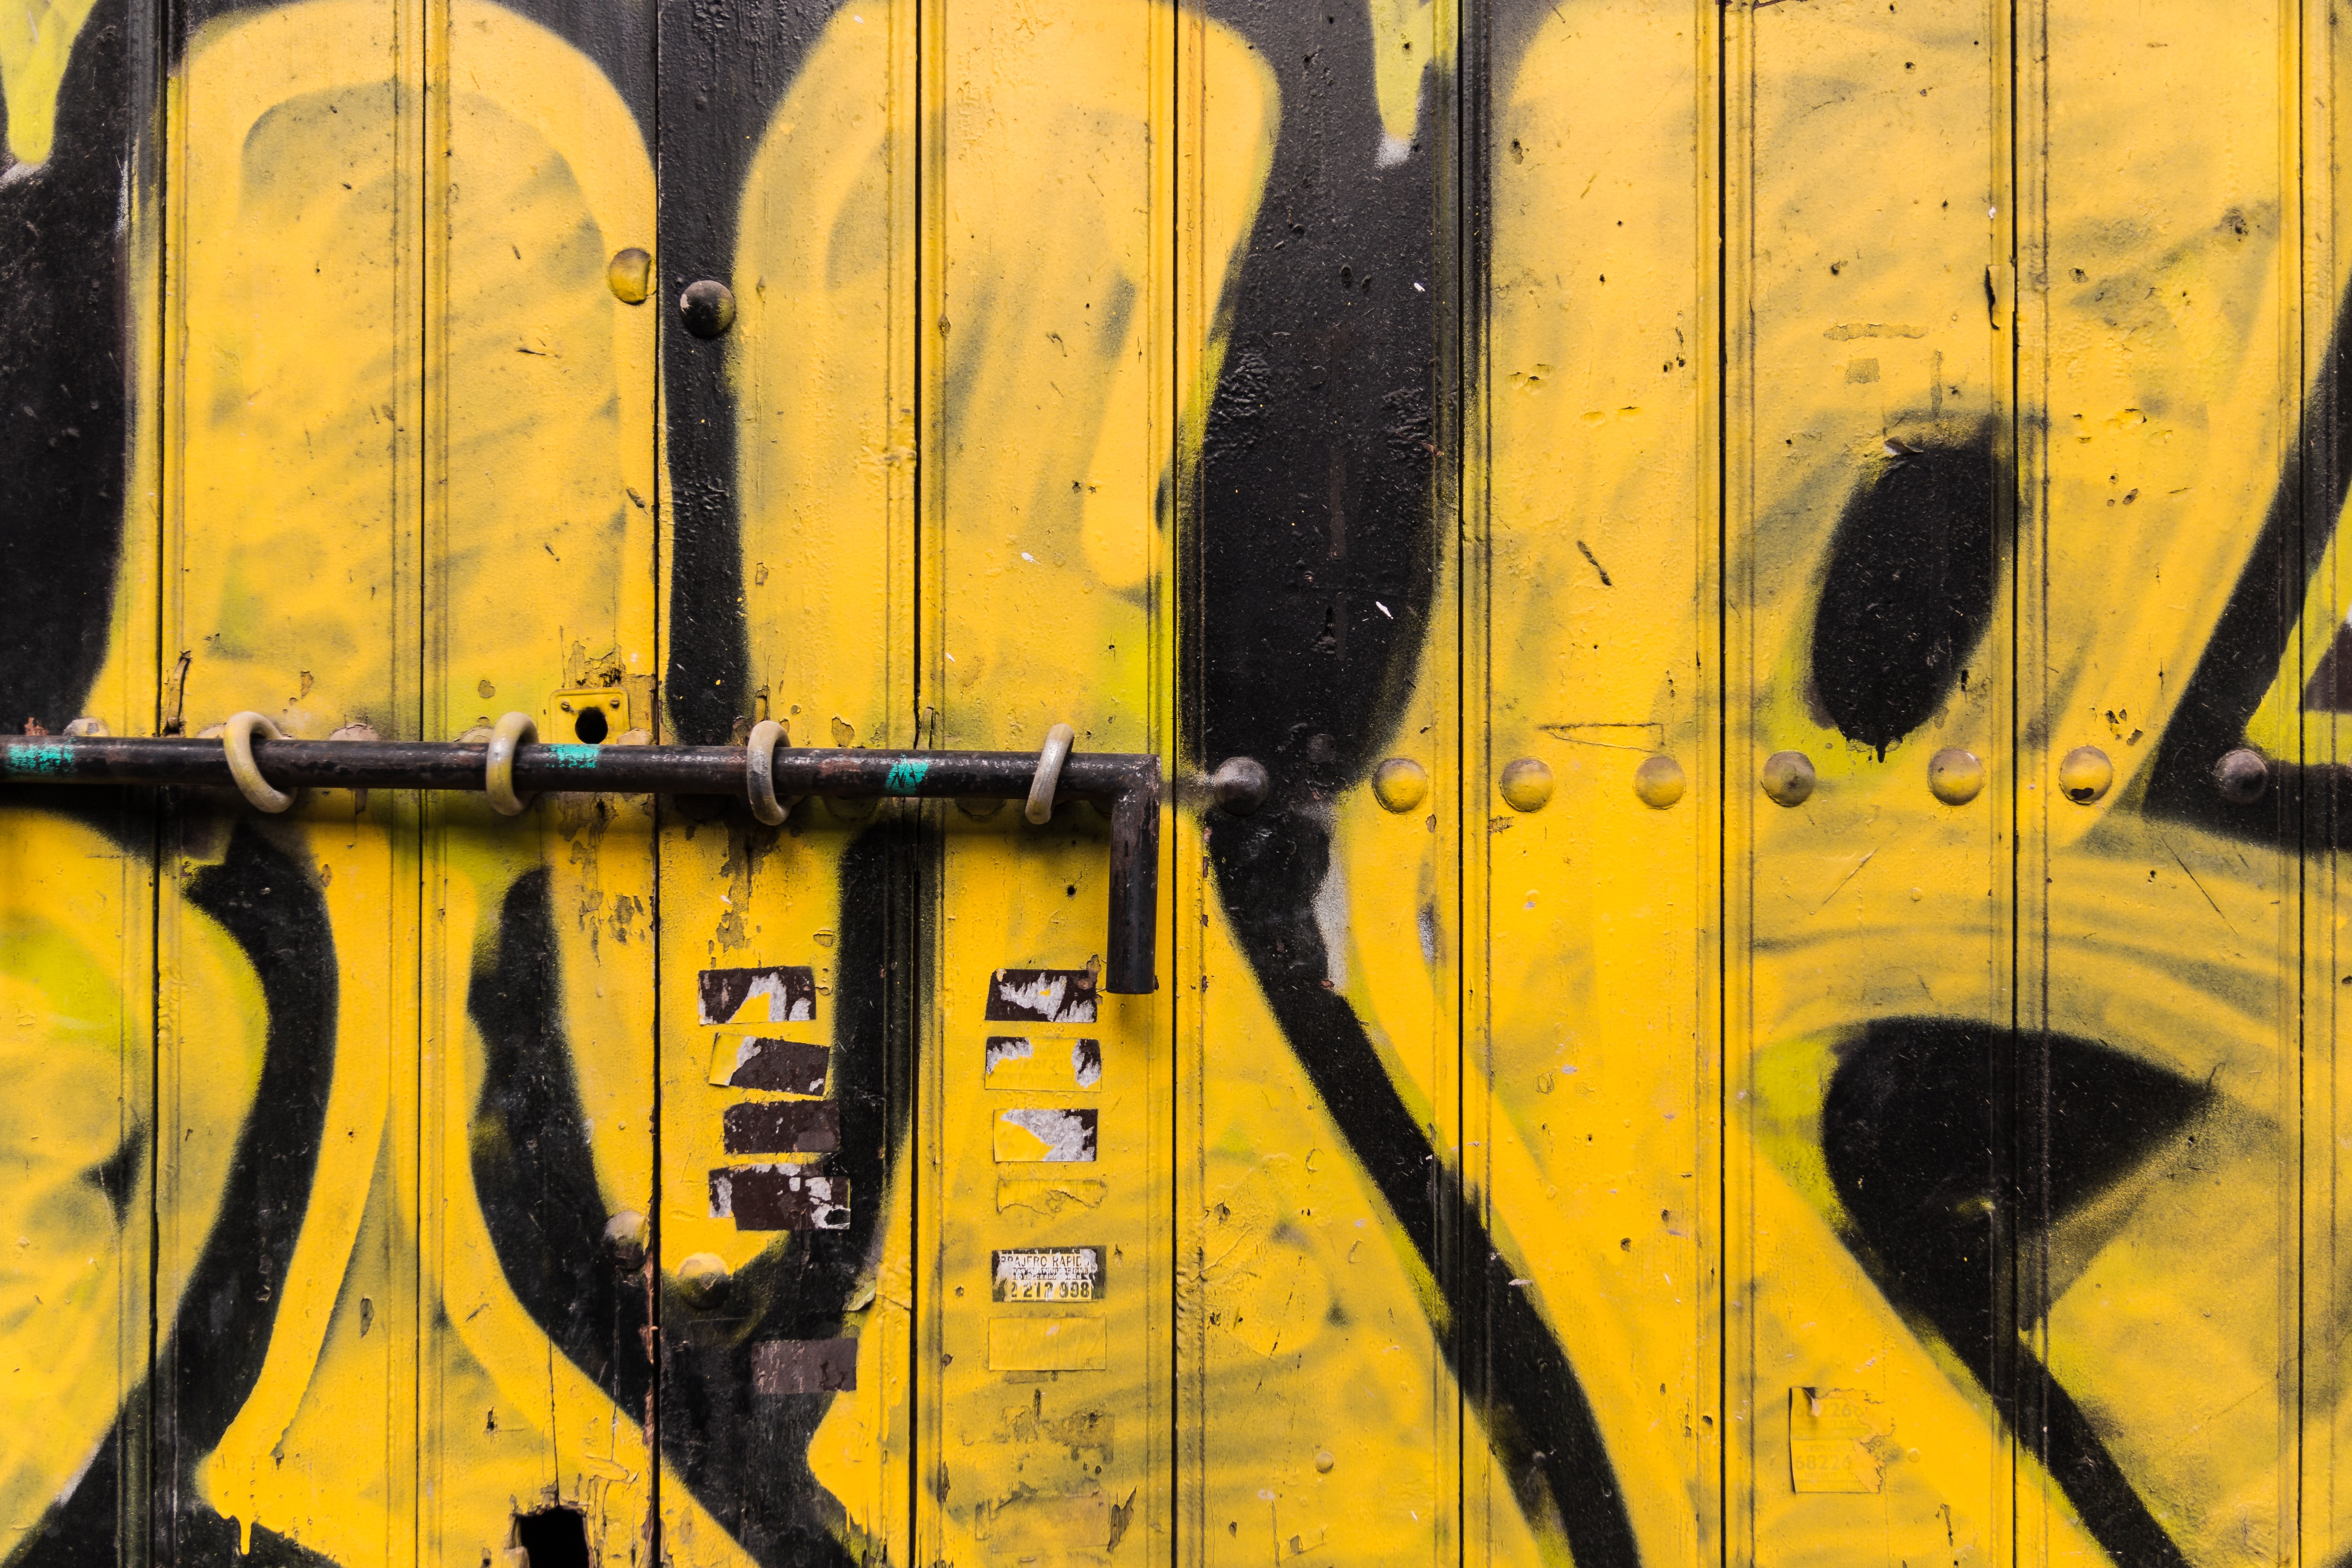 yellow and black wooden gate with graffiti and metal pole